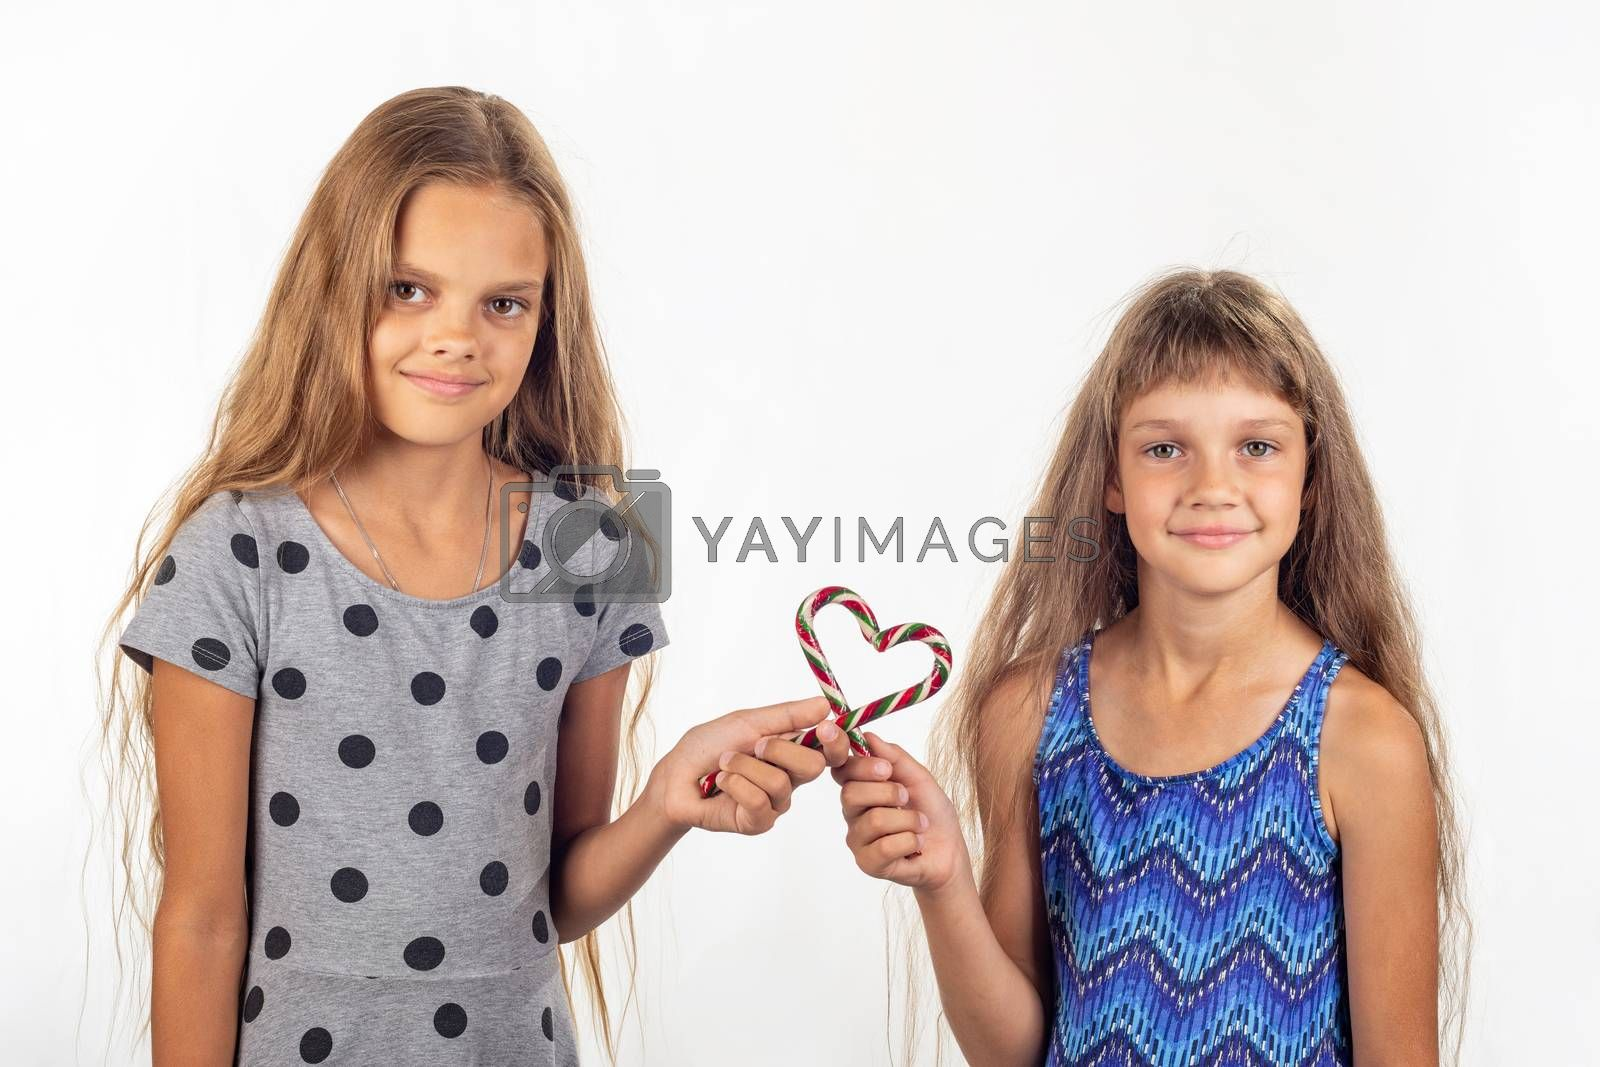 Two girls made a heart out of two lollipops and look into the frame by Madhourse